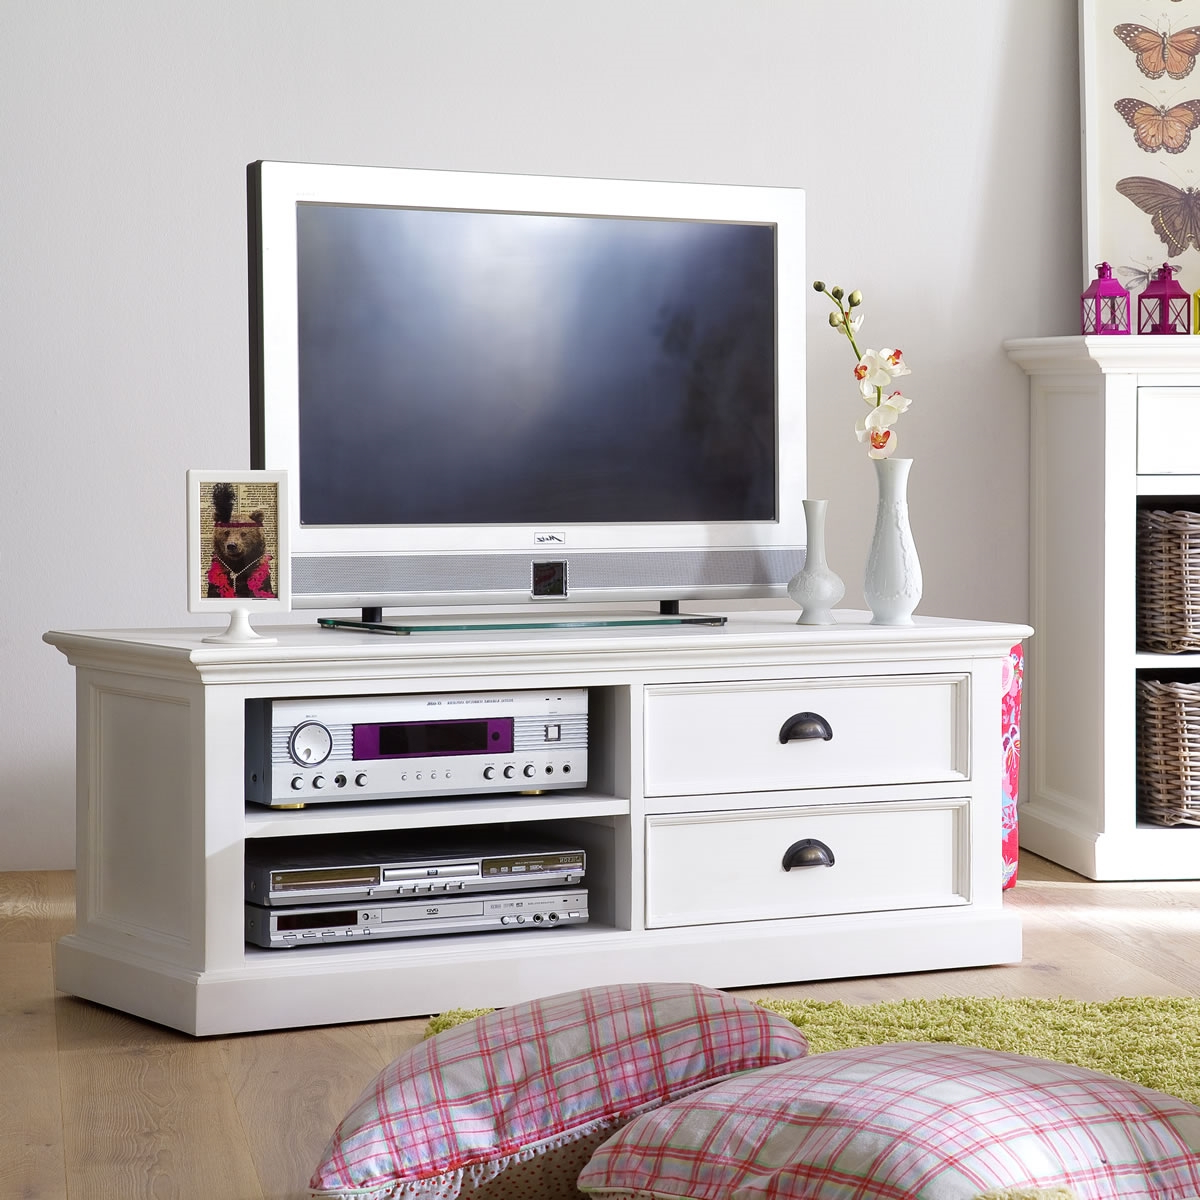 Most Recently Released Tv Stand Pictures Sample Latest Pics Corner – Buyouapp In Cheap White Tv Stands (View 14 of 20)